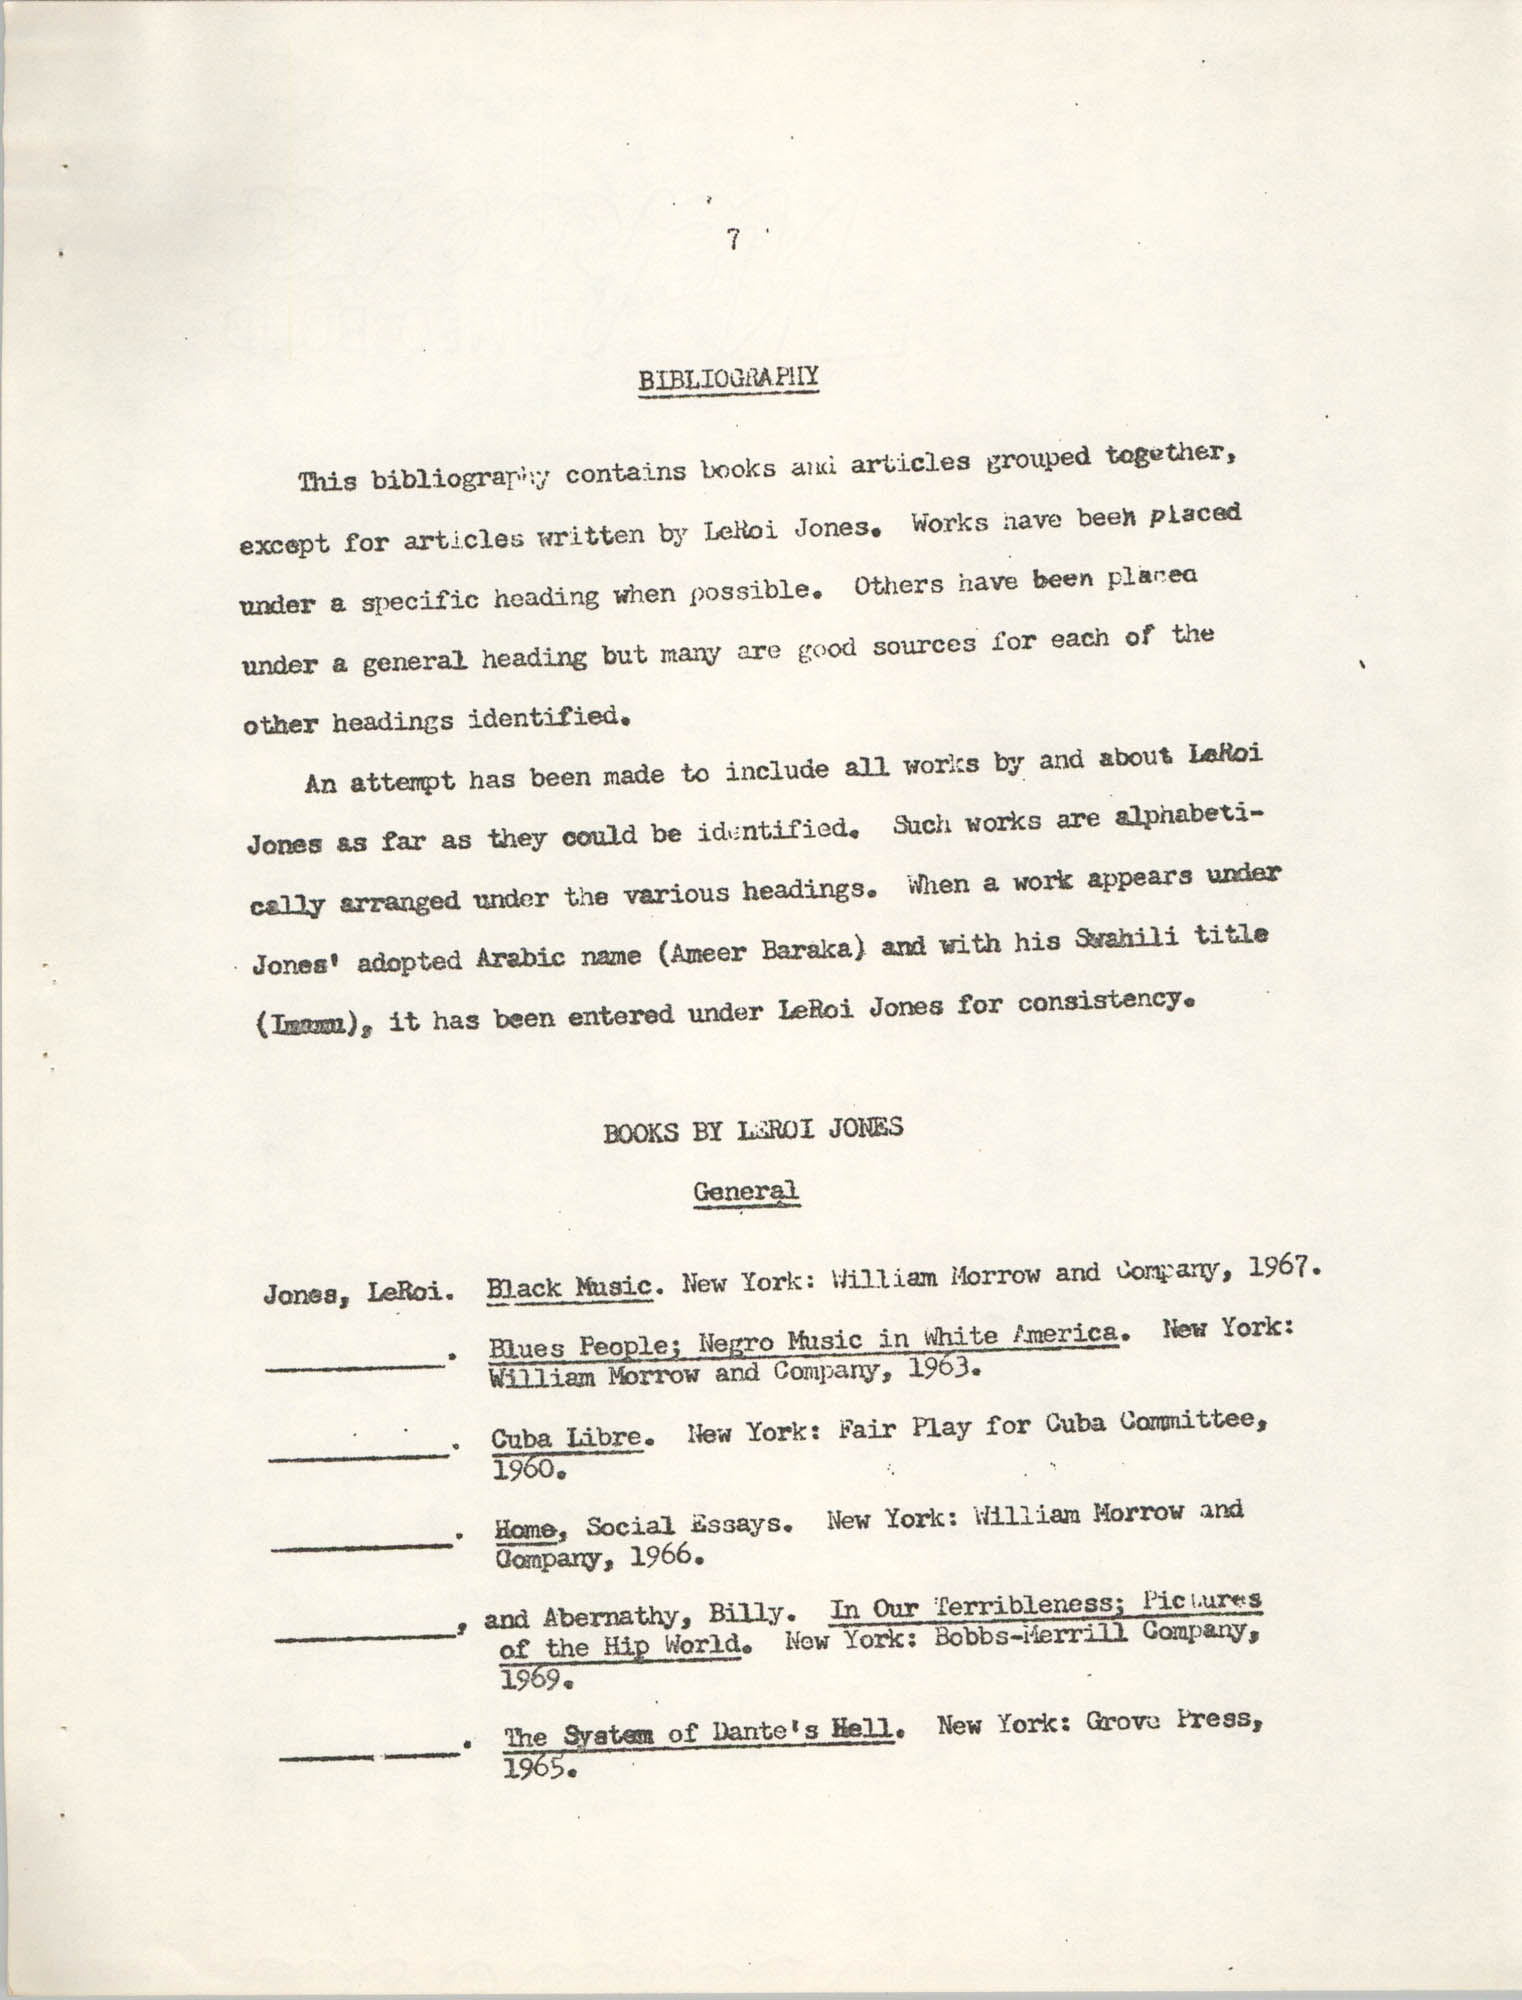 Center for African and African-American Studies Bibliography No. 2, Page 7